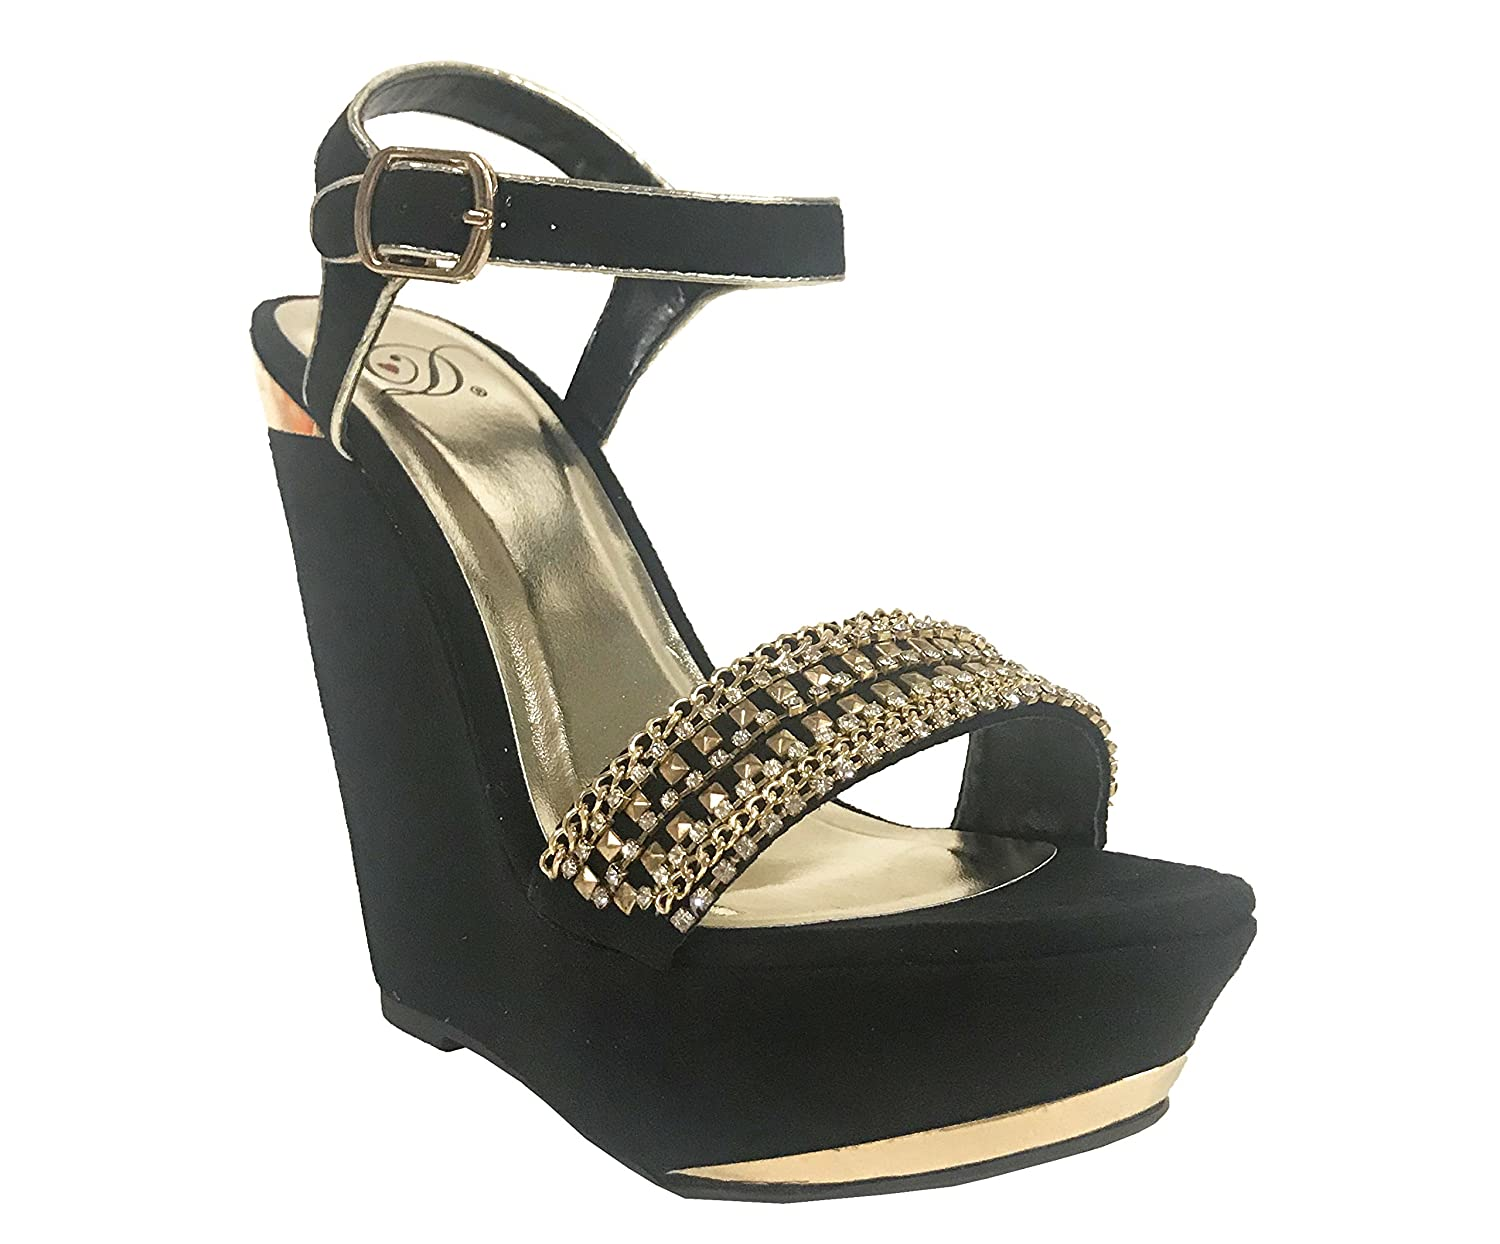 Delicious FIFI! Women's Gold Chain Diamond Embellished Ankle Strap Platform Wedge Sandals B016NGZNMO 6.5 B(M) US Black Faux Suede